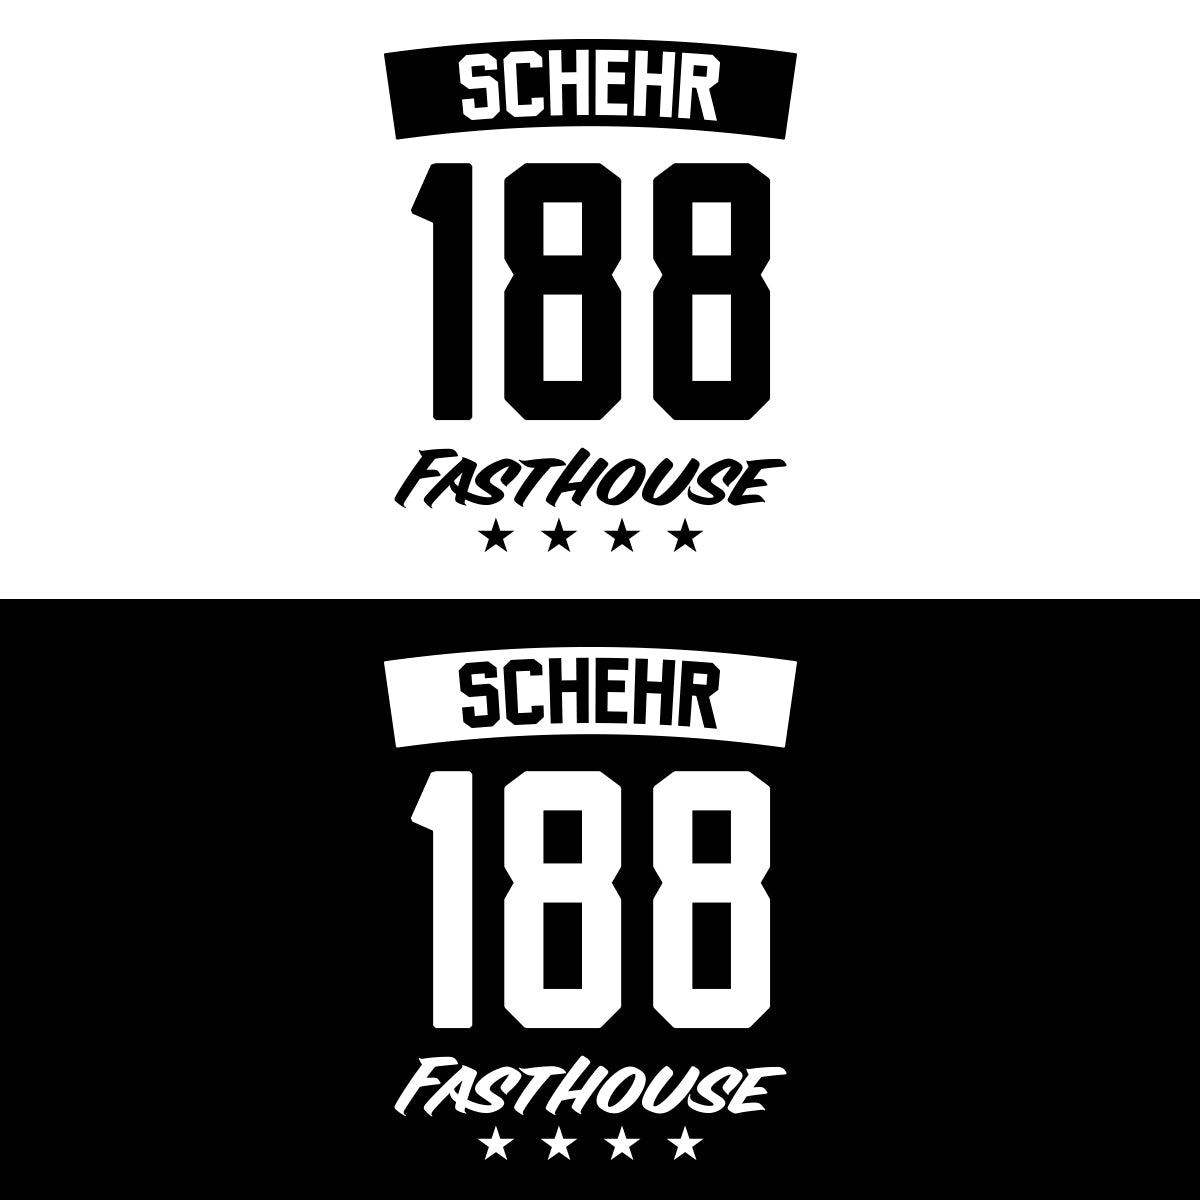 Fasthouse - Jersey ID Kit - Banner